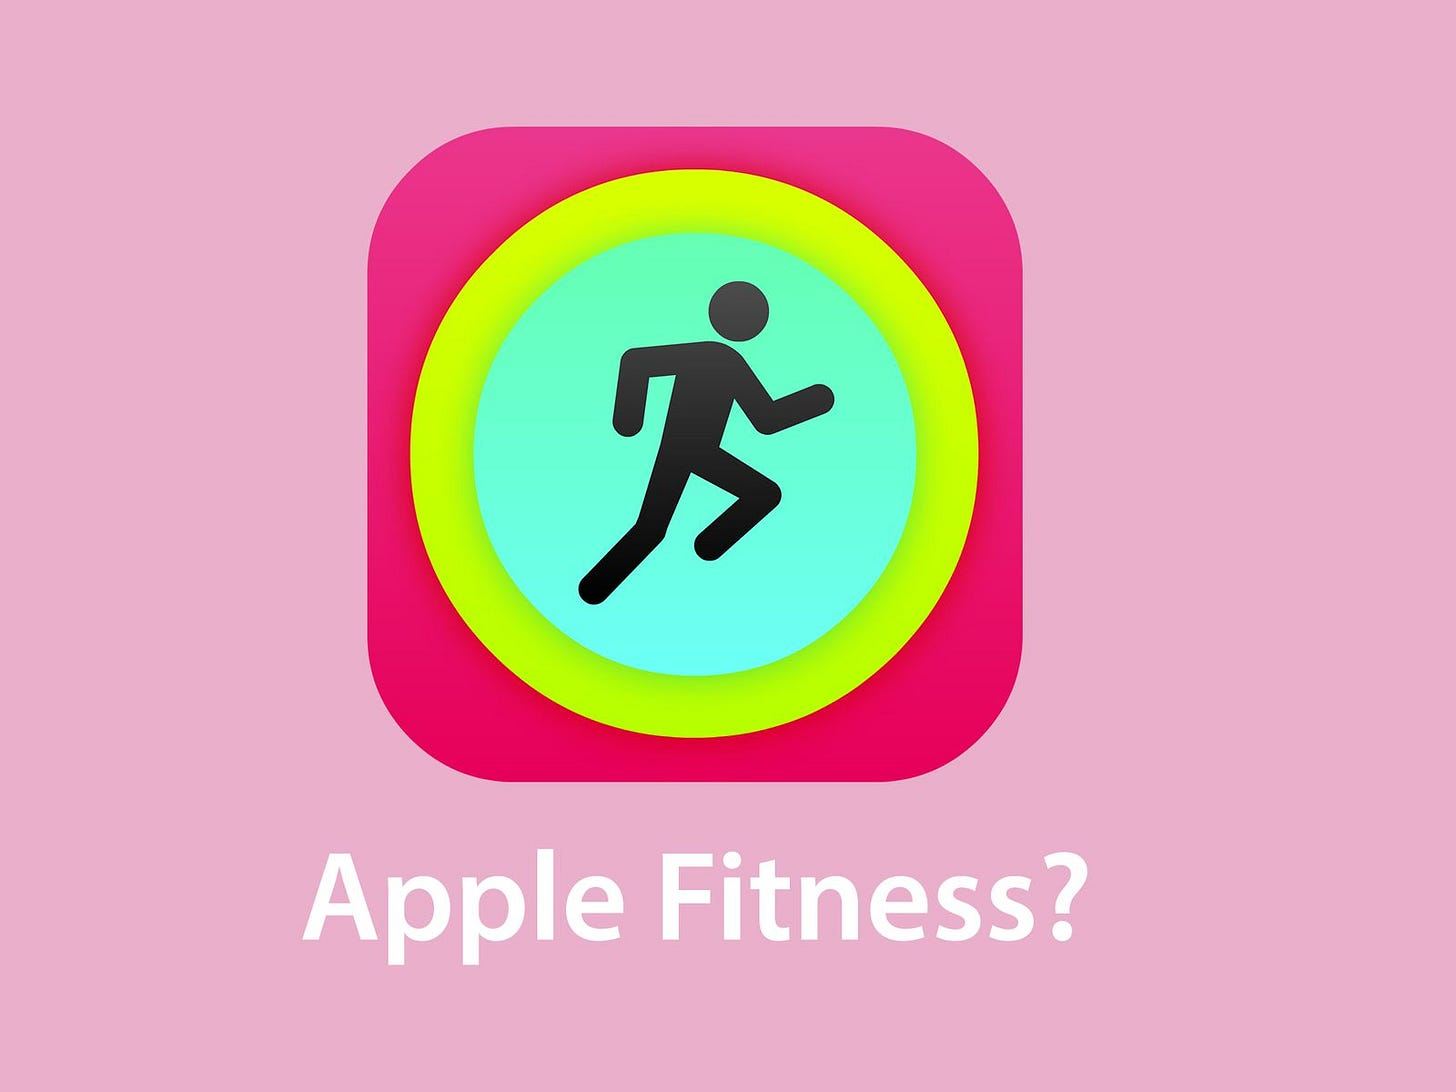 Apple Plans to Launch Fitness Subscription Service - MacRumors